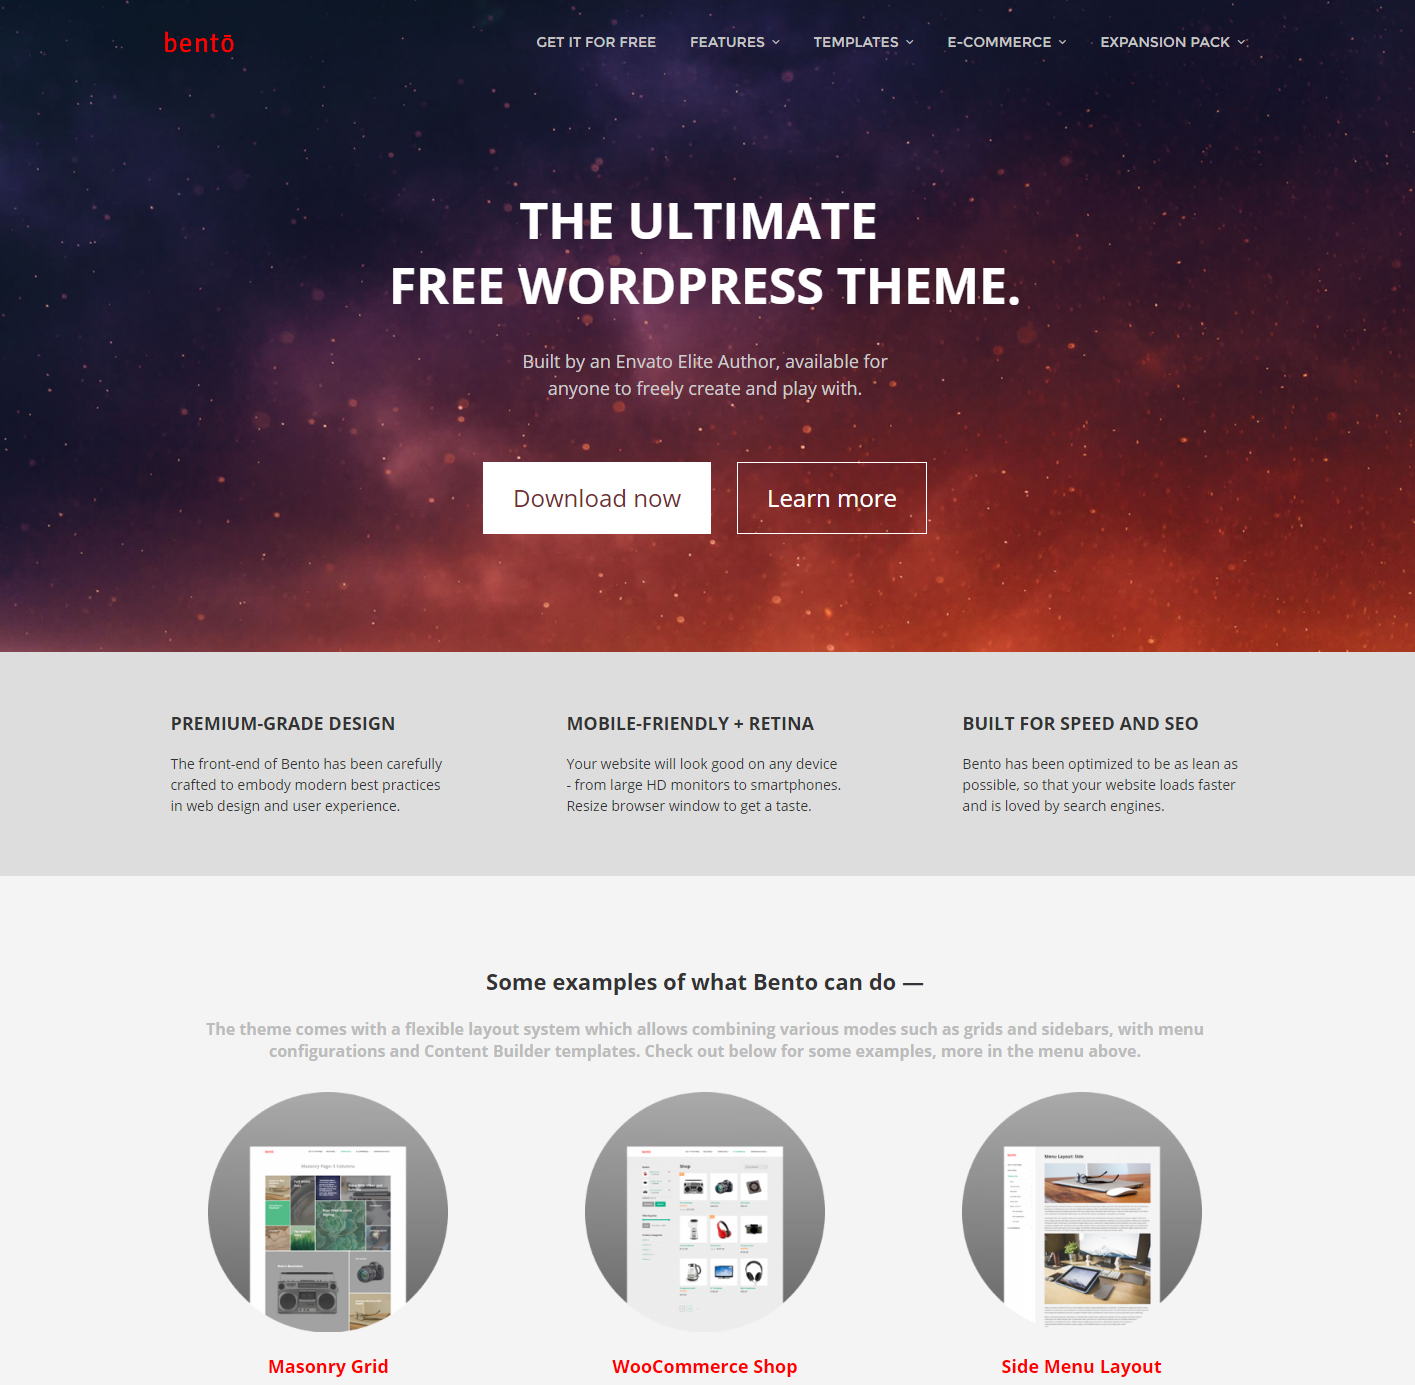 bento-free-wordpress-theme